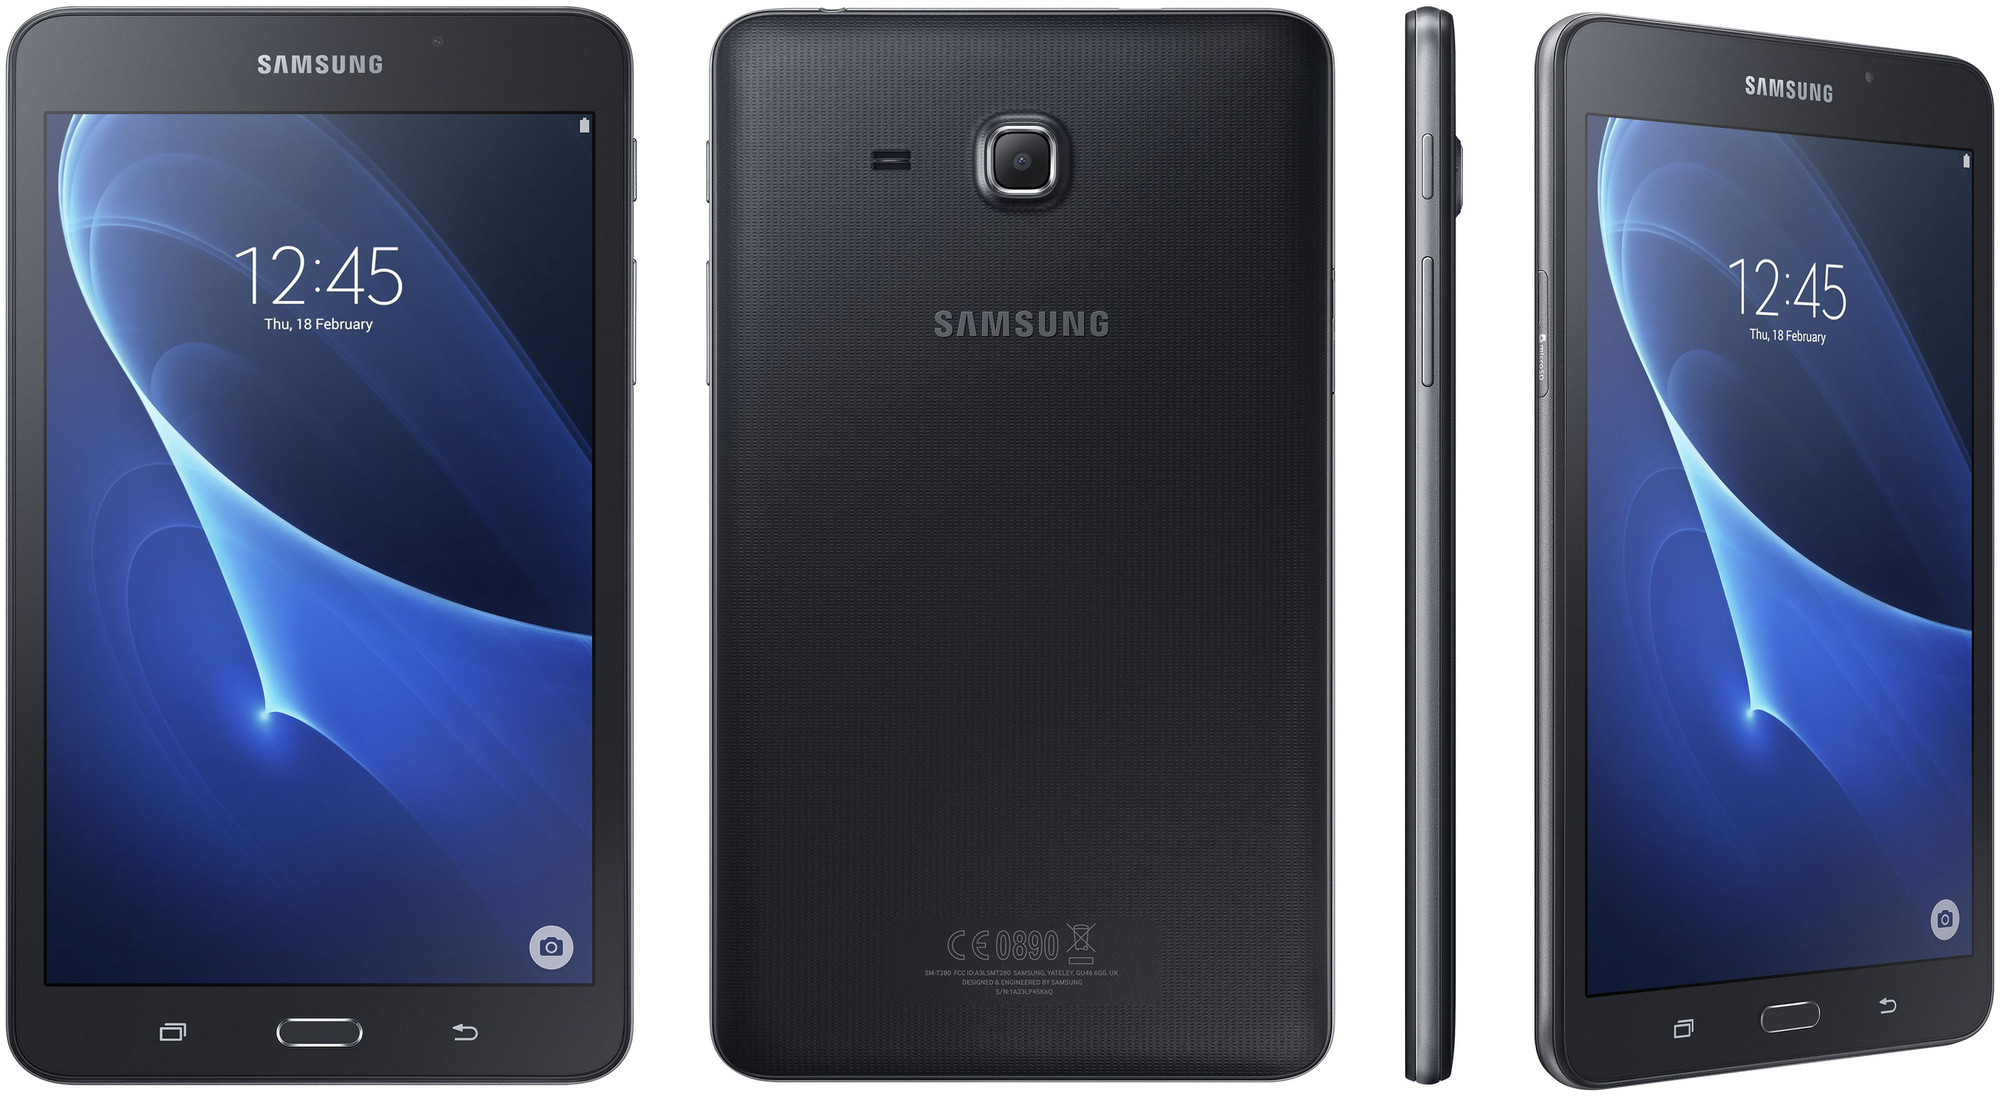 samsung galaxy tab a 7 0 2016 4g t285 specs and price phonegg. Black Bedroom Furniture Sets. Home Design Ideas